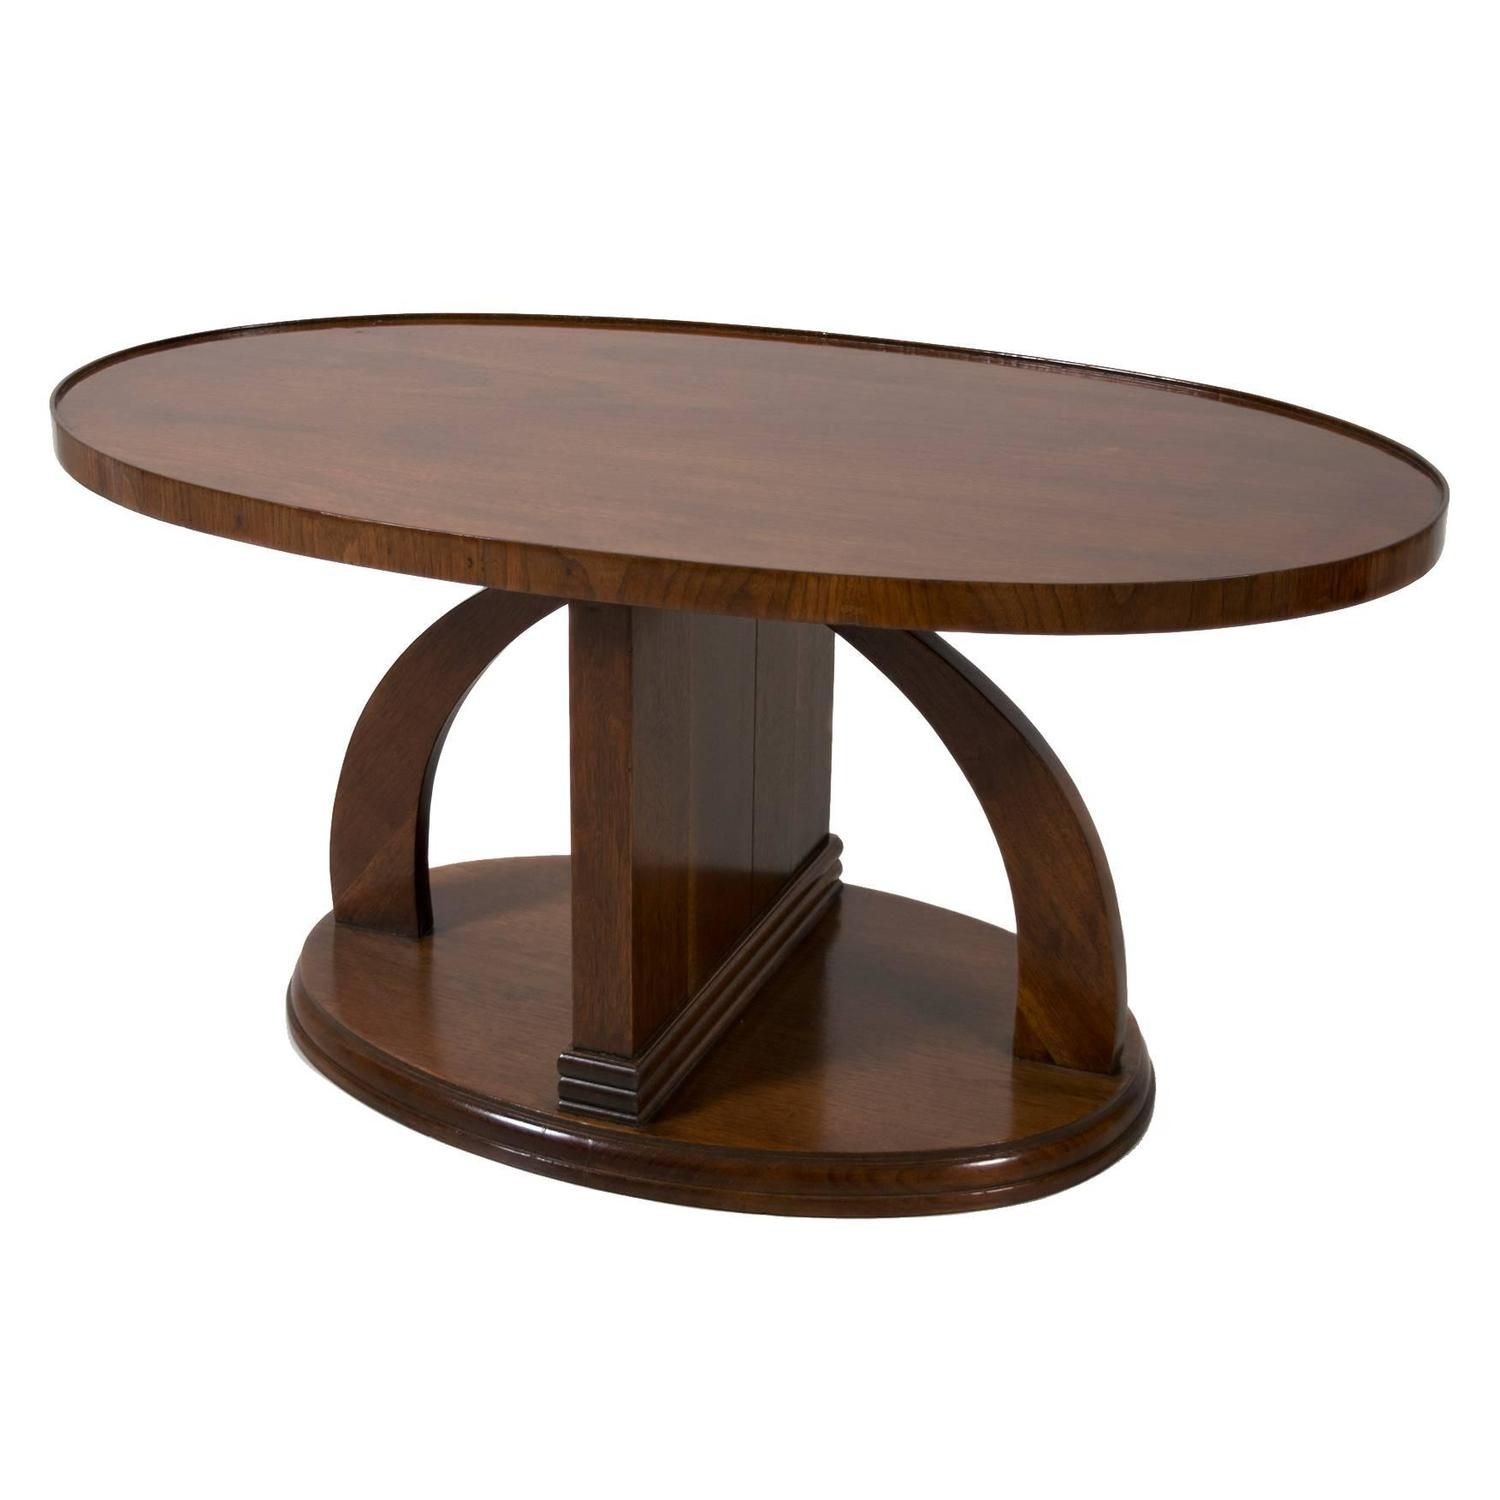 Swedish Art Deco Period Mahogany Coffee Table Or Occasional Table